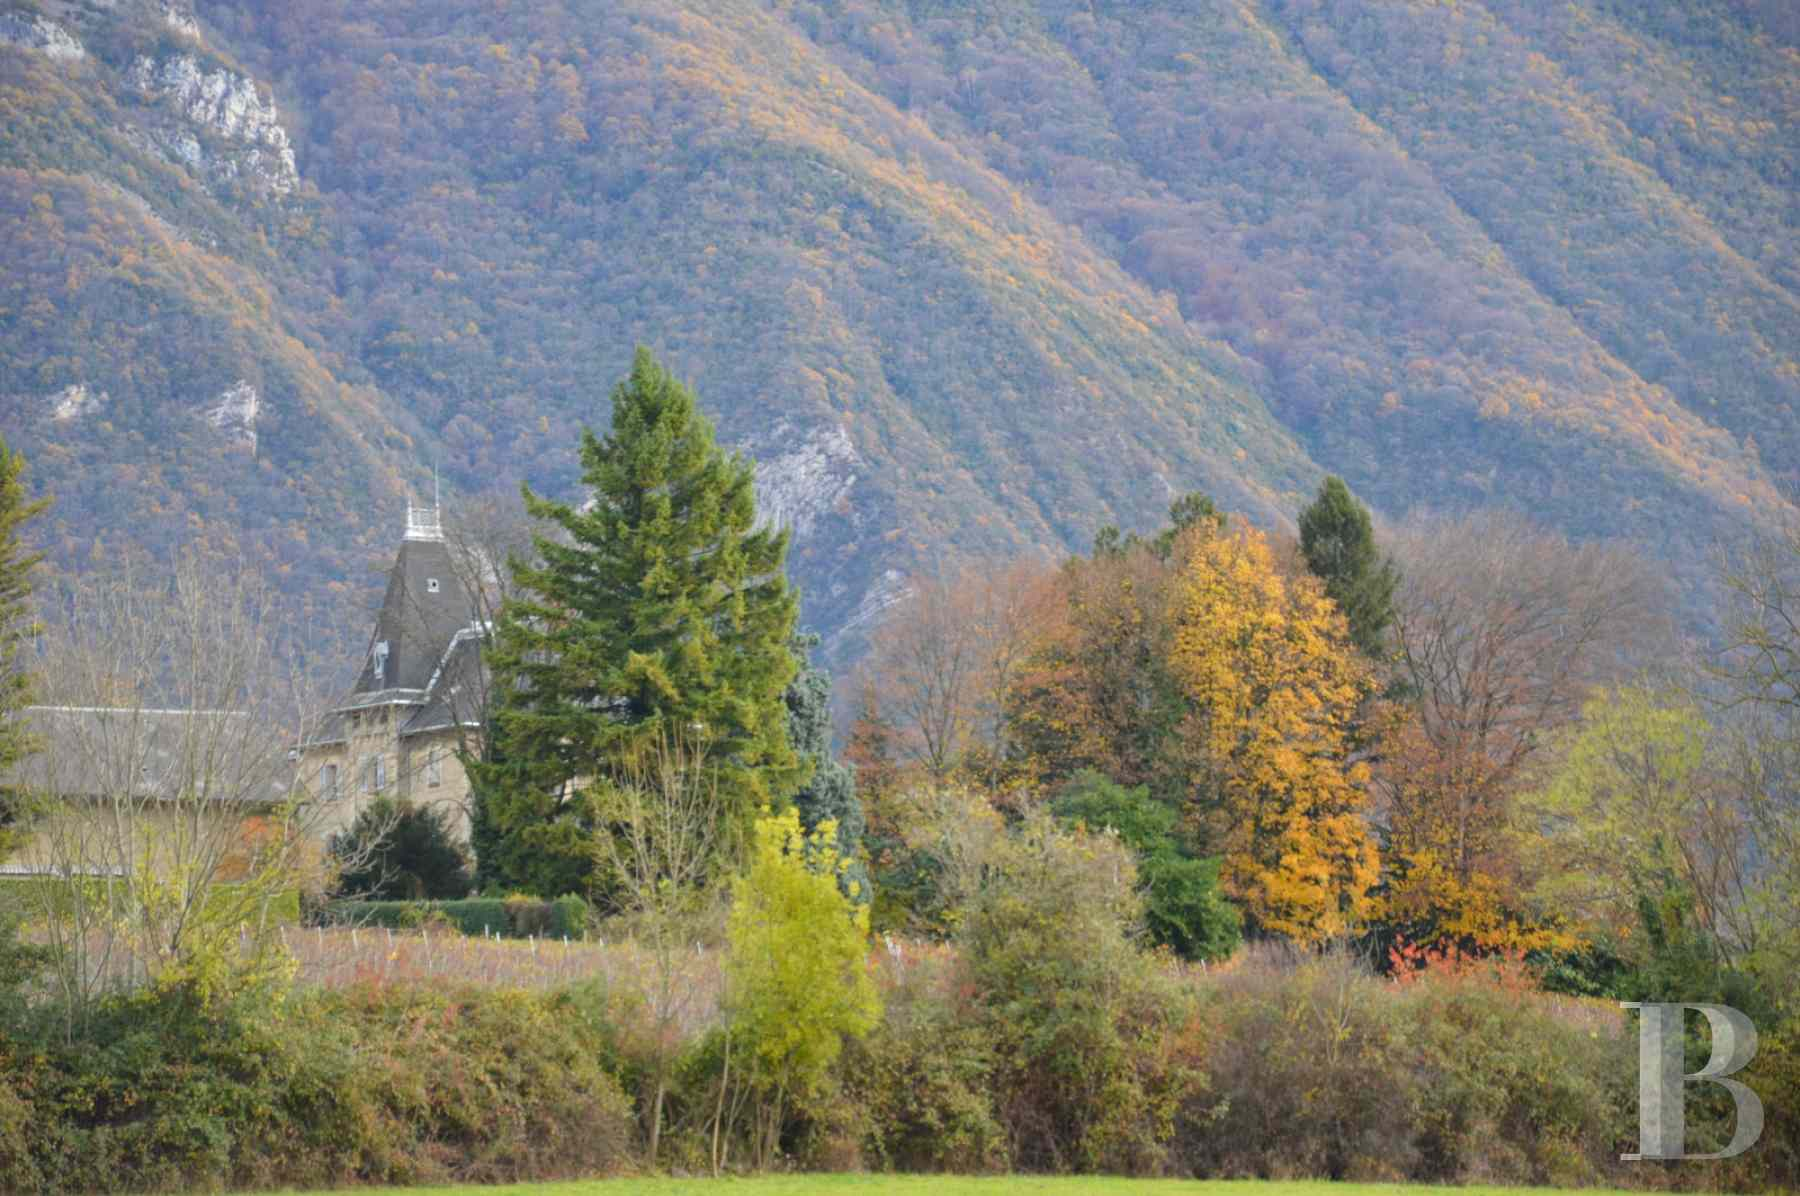 chateaux for sale France rhones alps chambery 18th - 17 zoom